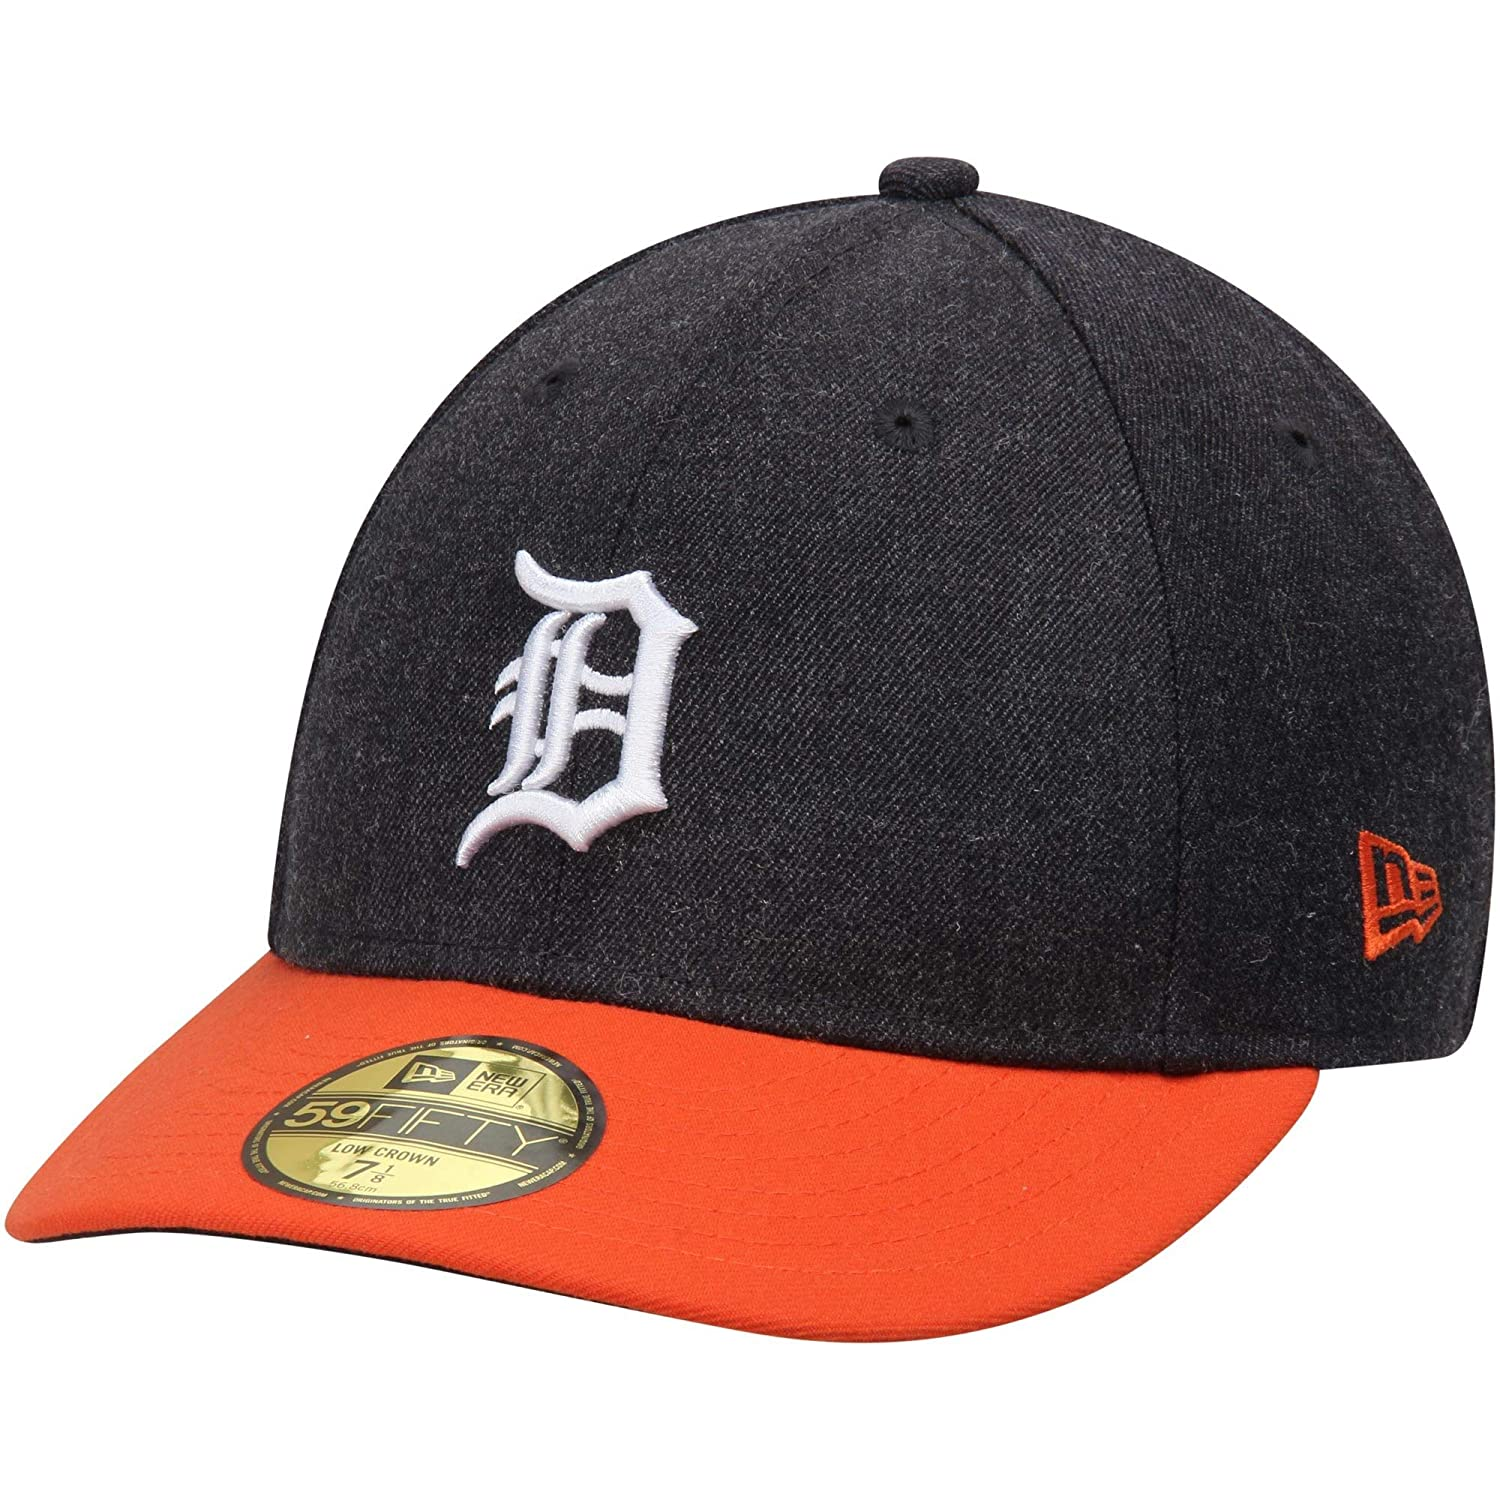 Amazon.com   New Era MLB Change Up Low Crown 59FIFTY Fitted Cap   Sports    Outdoors f5f3379bdb6